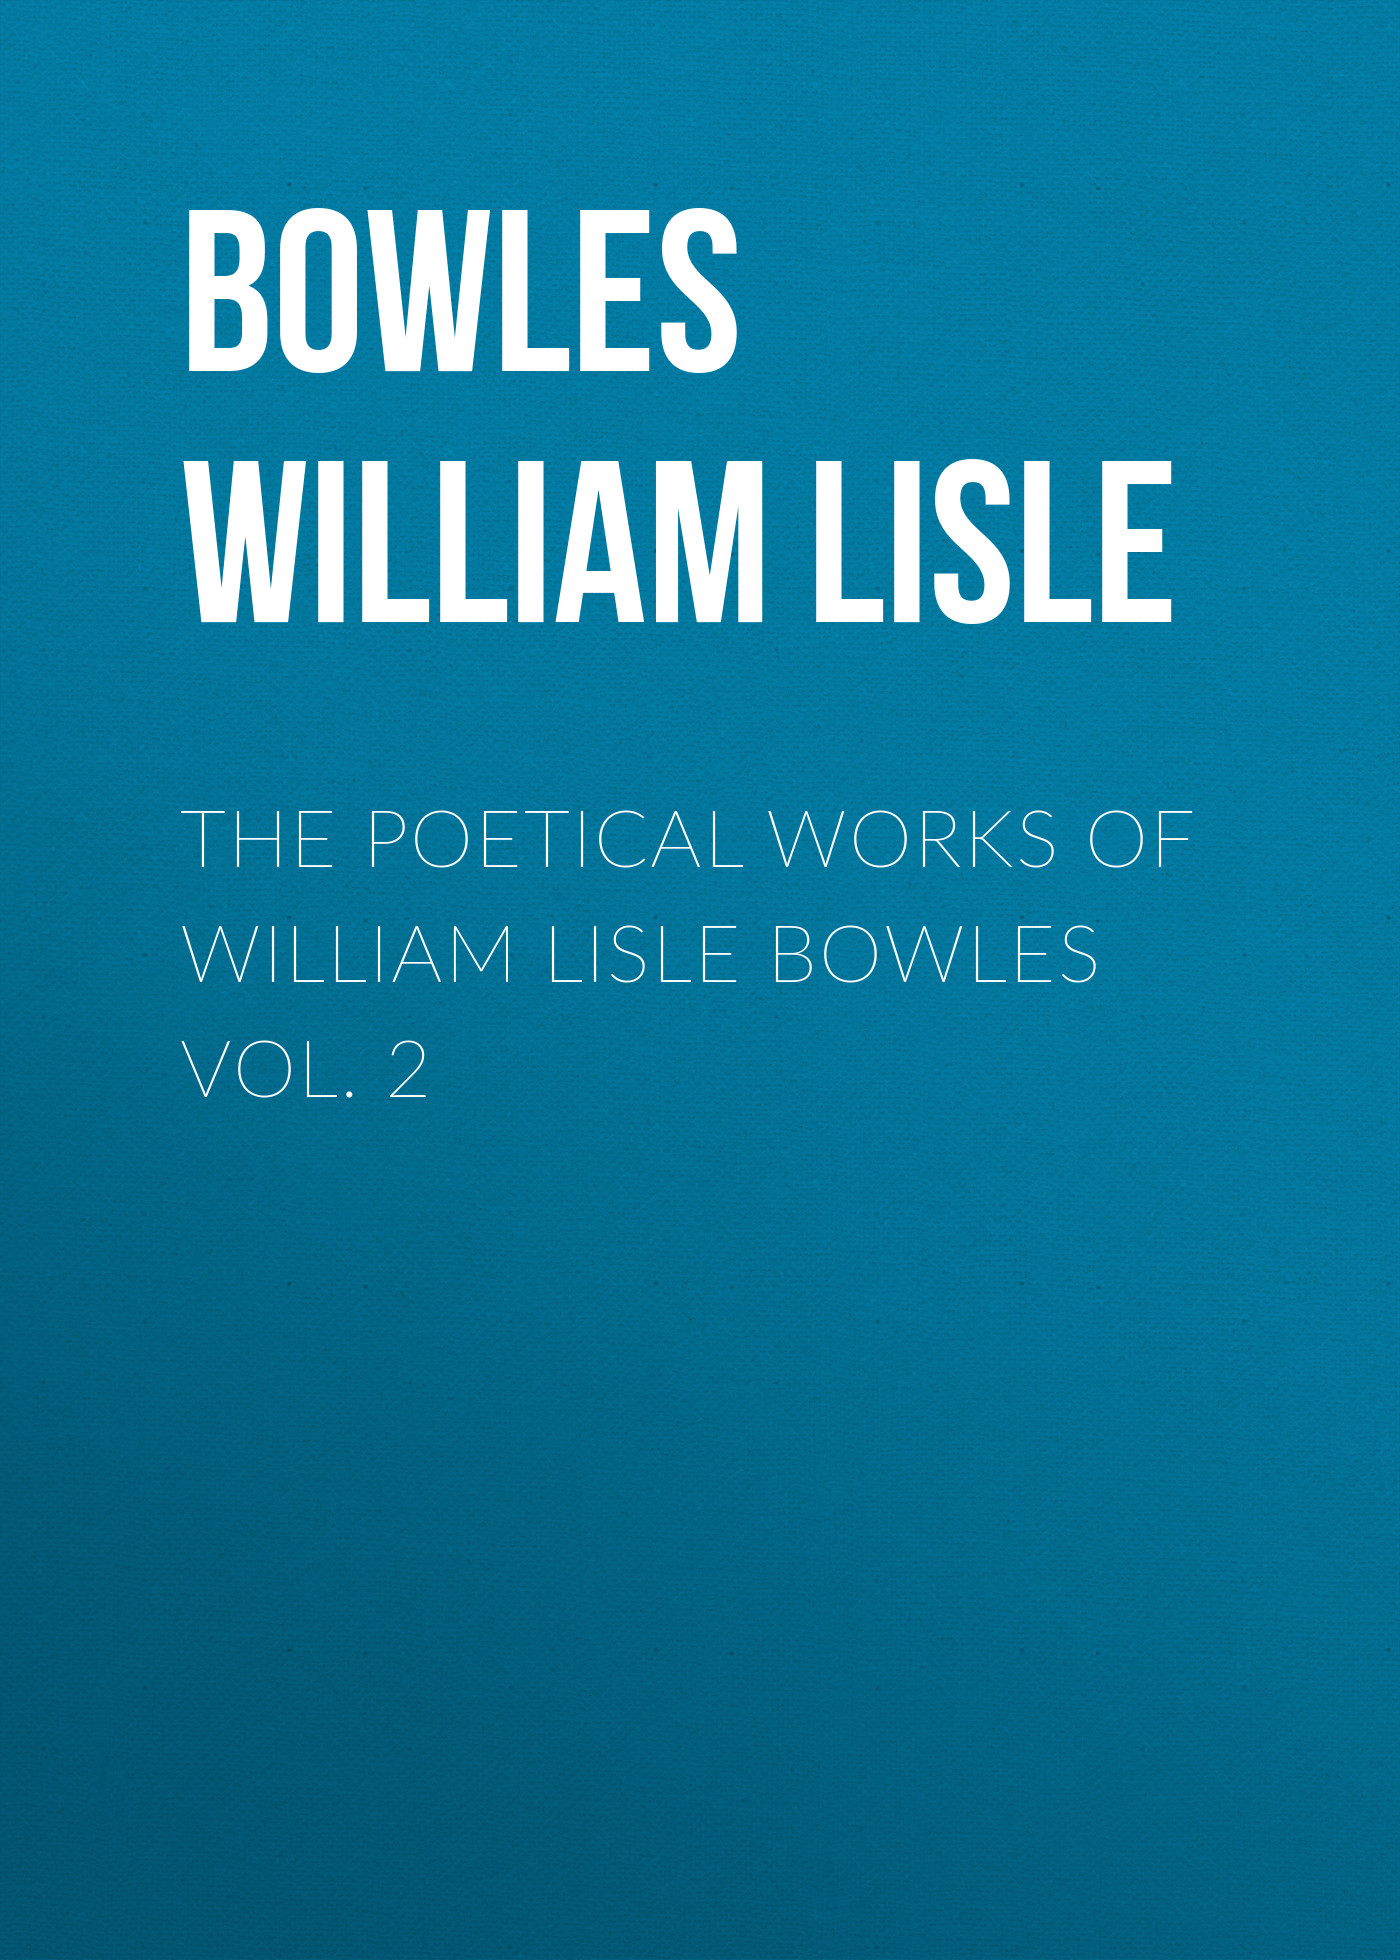 Bowles William Lisle The Poetical Works of William Lisle Bowles Vol. 2 william king the poetical works vol 2